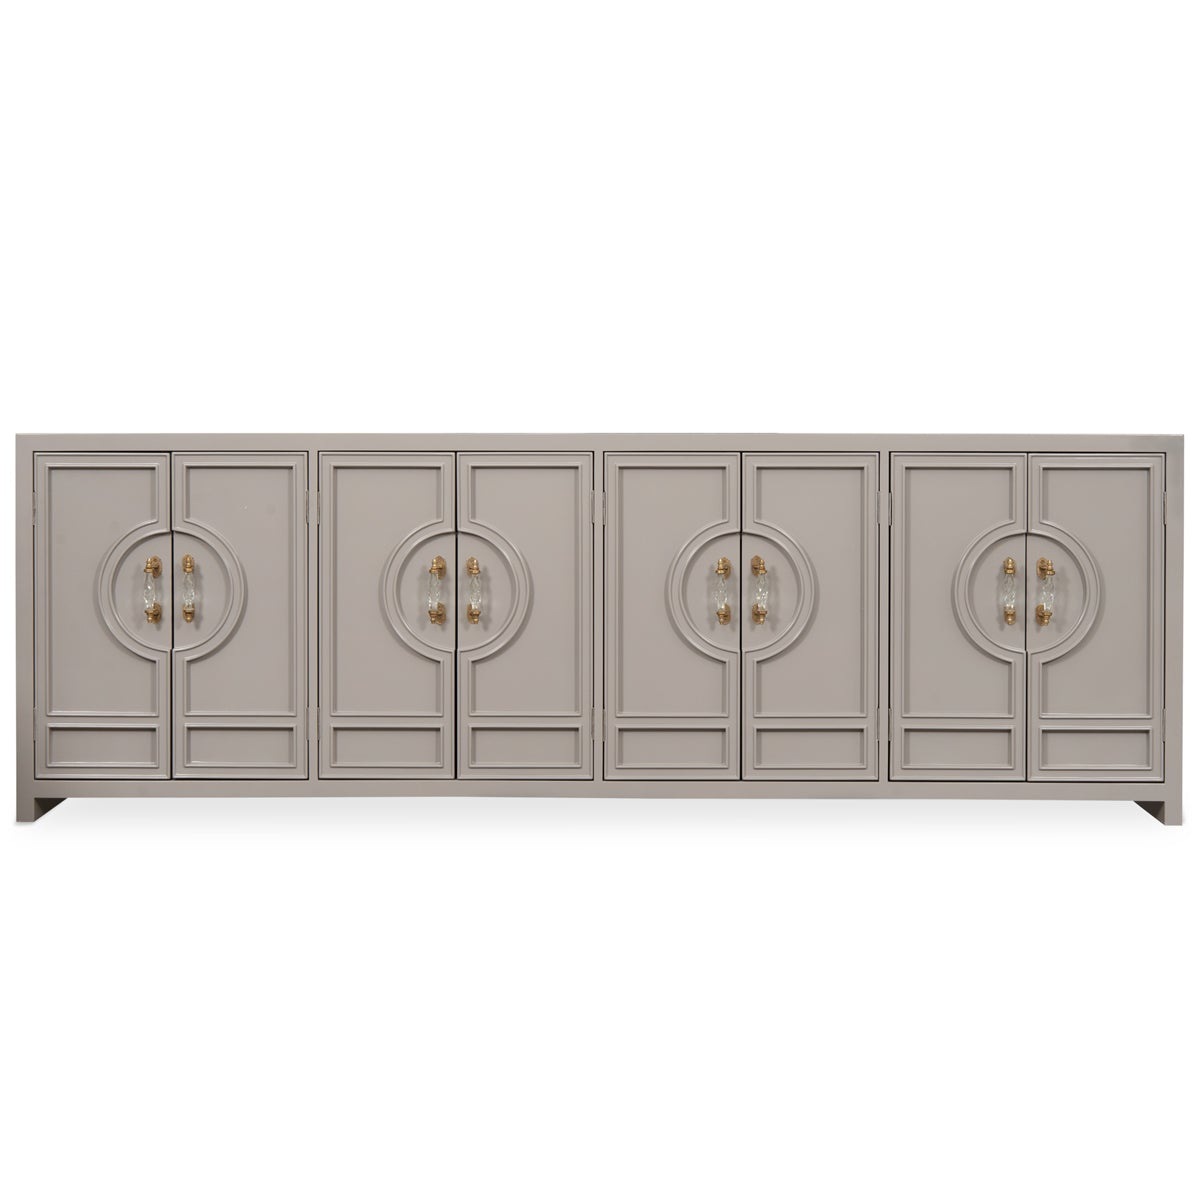 Beau Cannes 8 Door Tall Credenza